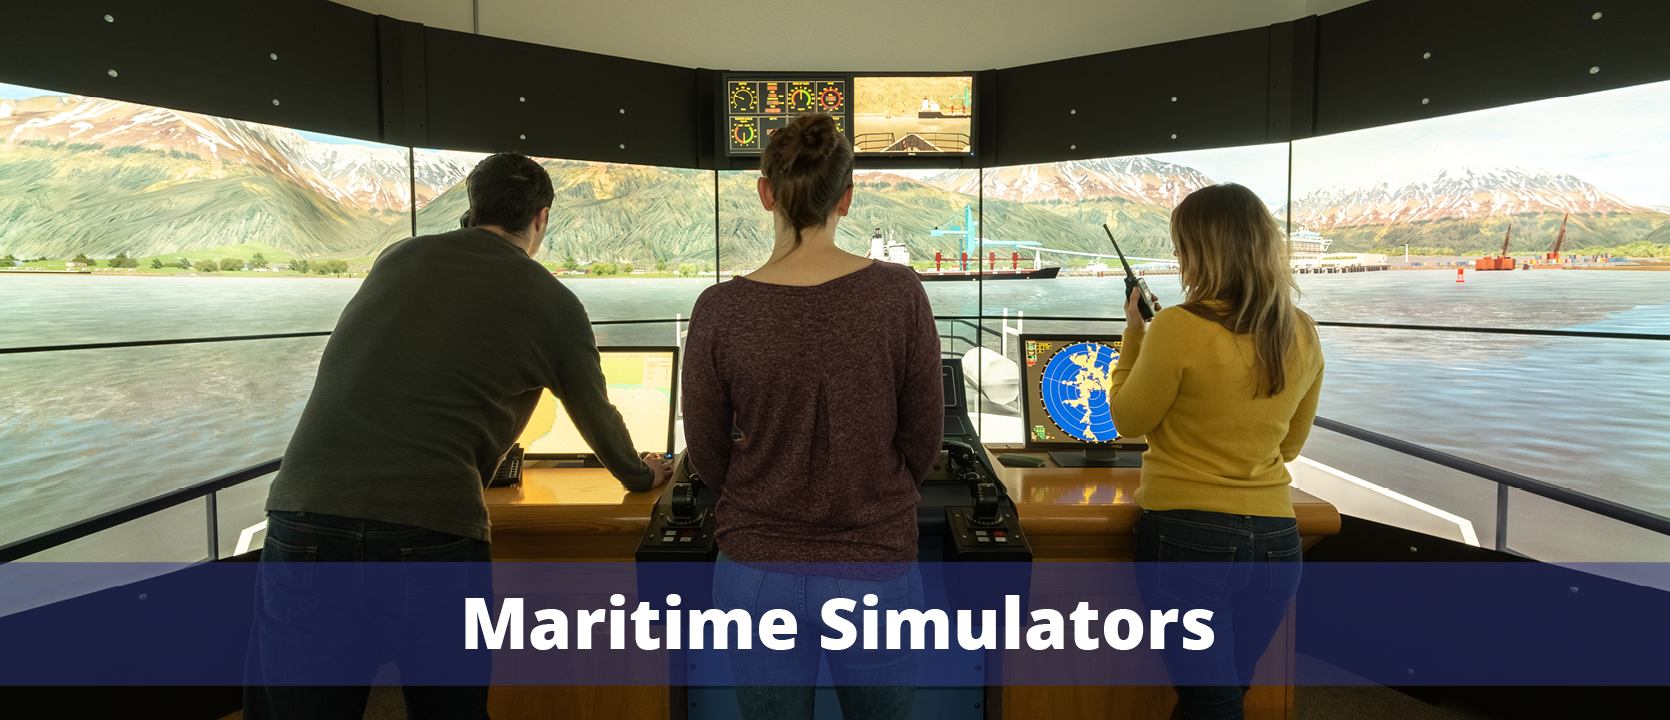 Maritime Simulators